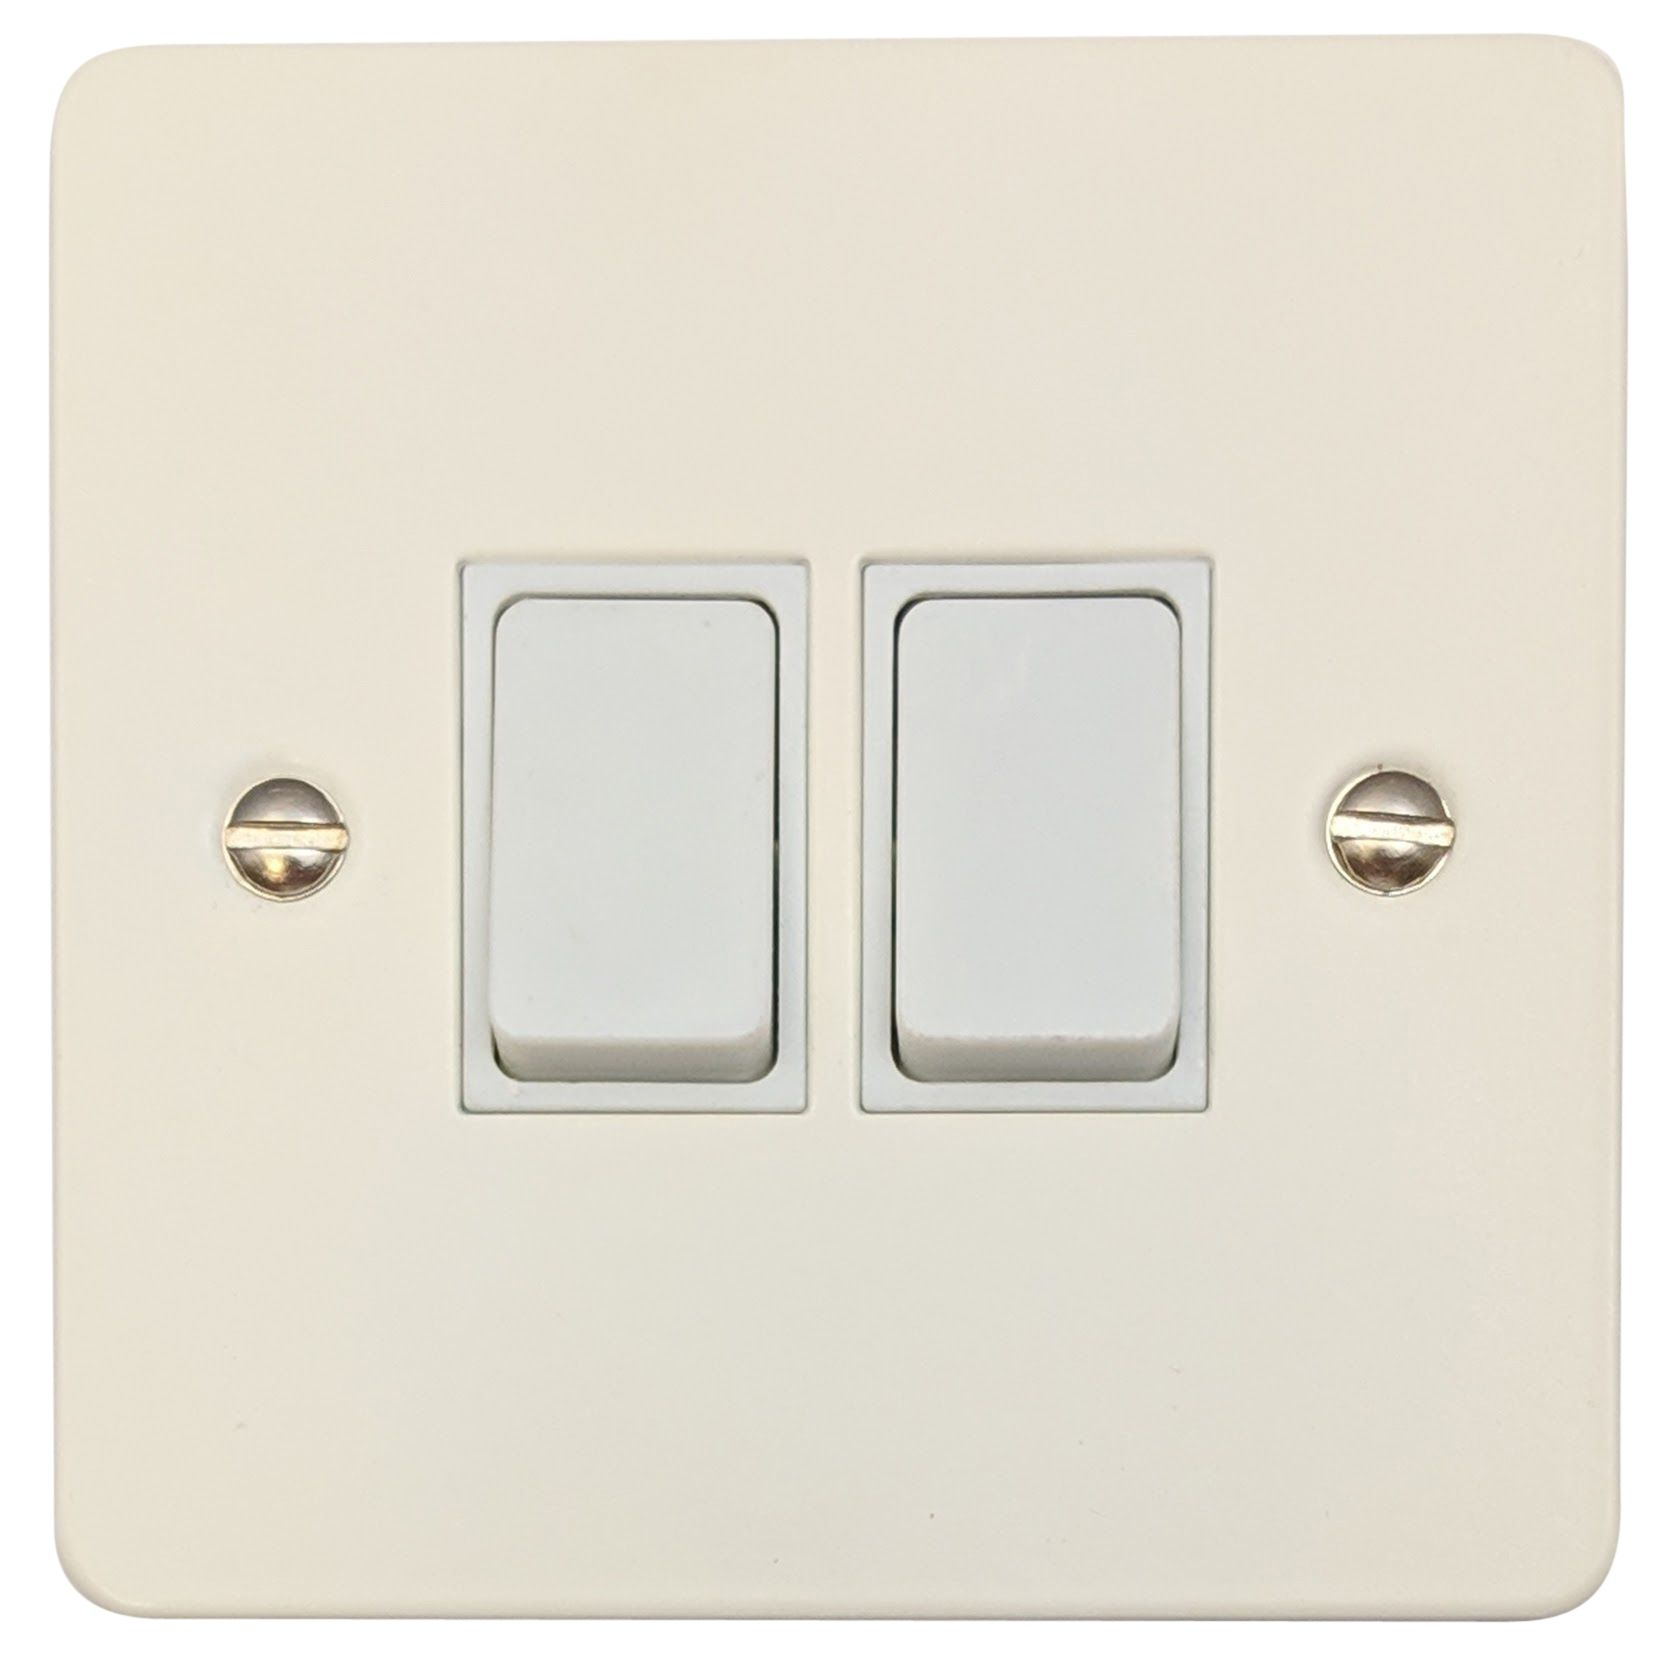 Rocker Light Switch >> G H Fw2w Flat Plate Matt White 2 Gang 1 Or 2 Way Rocker Light Switch